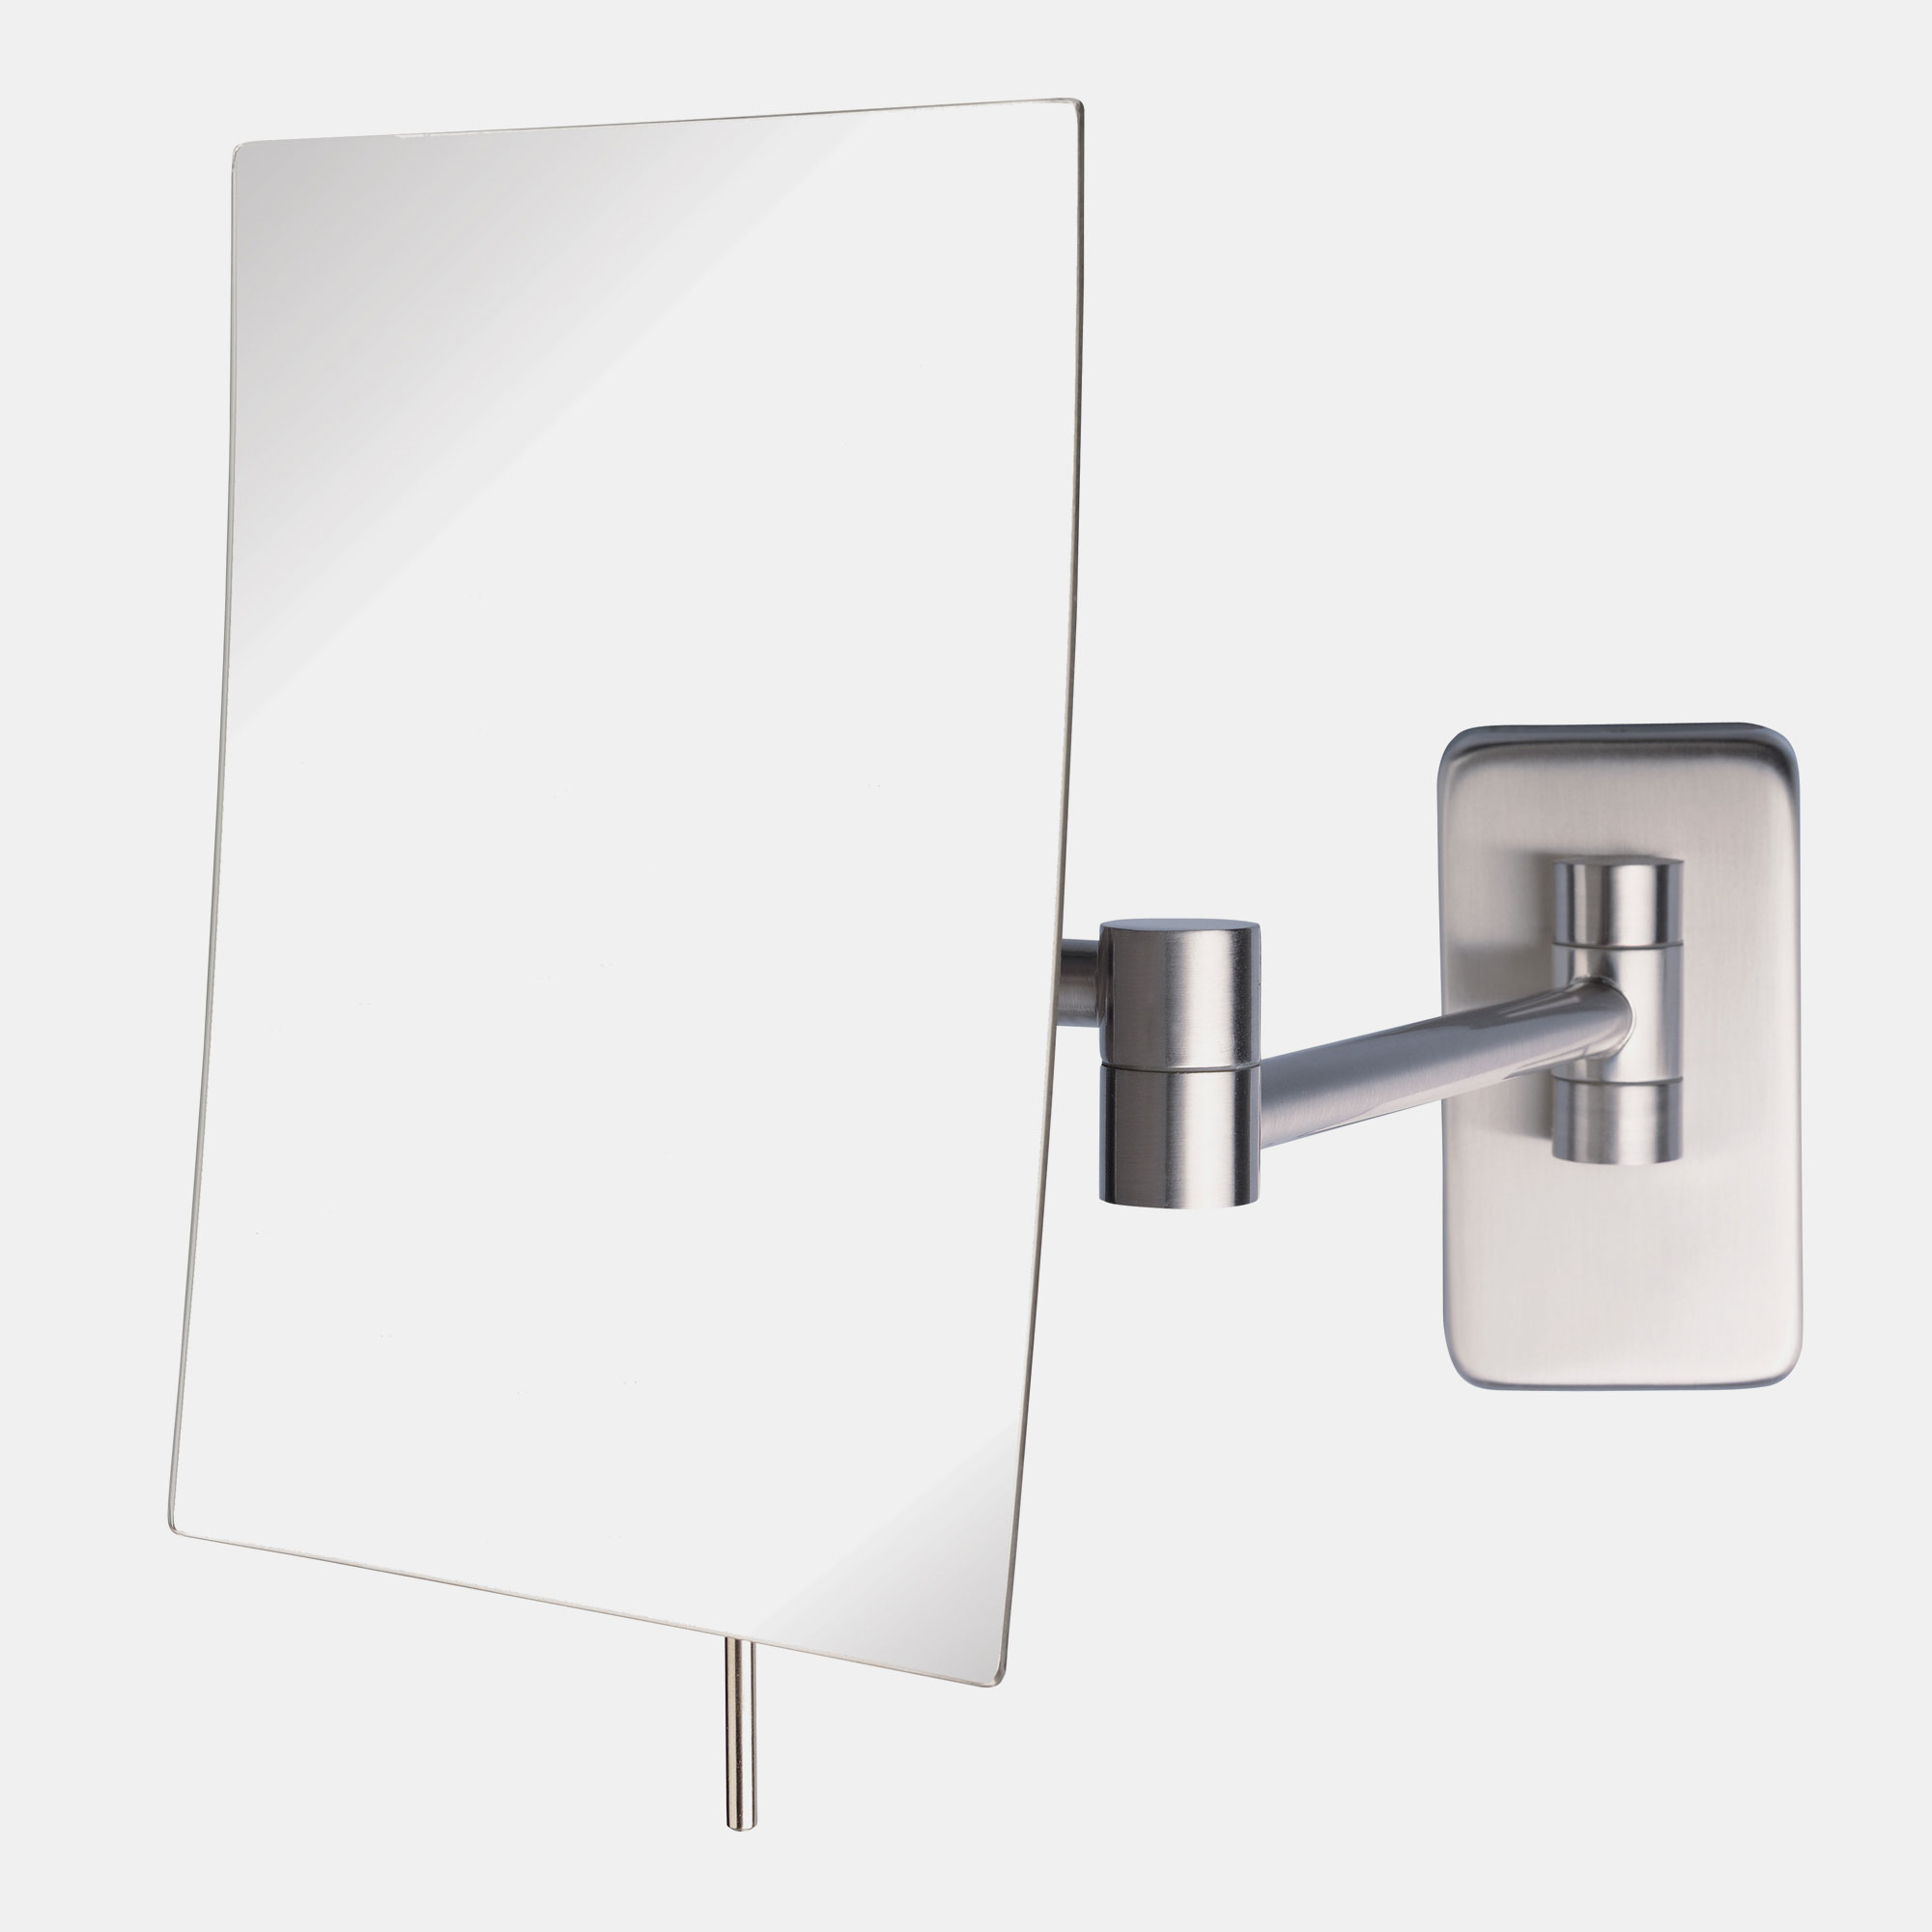 Jerdon Jrt695n 6 5 Quot X8 75 Quot Rectangular Wall Mount Mirror 5x